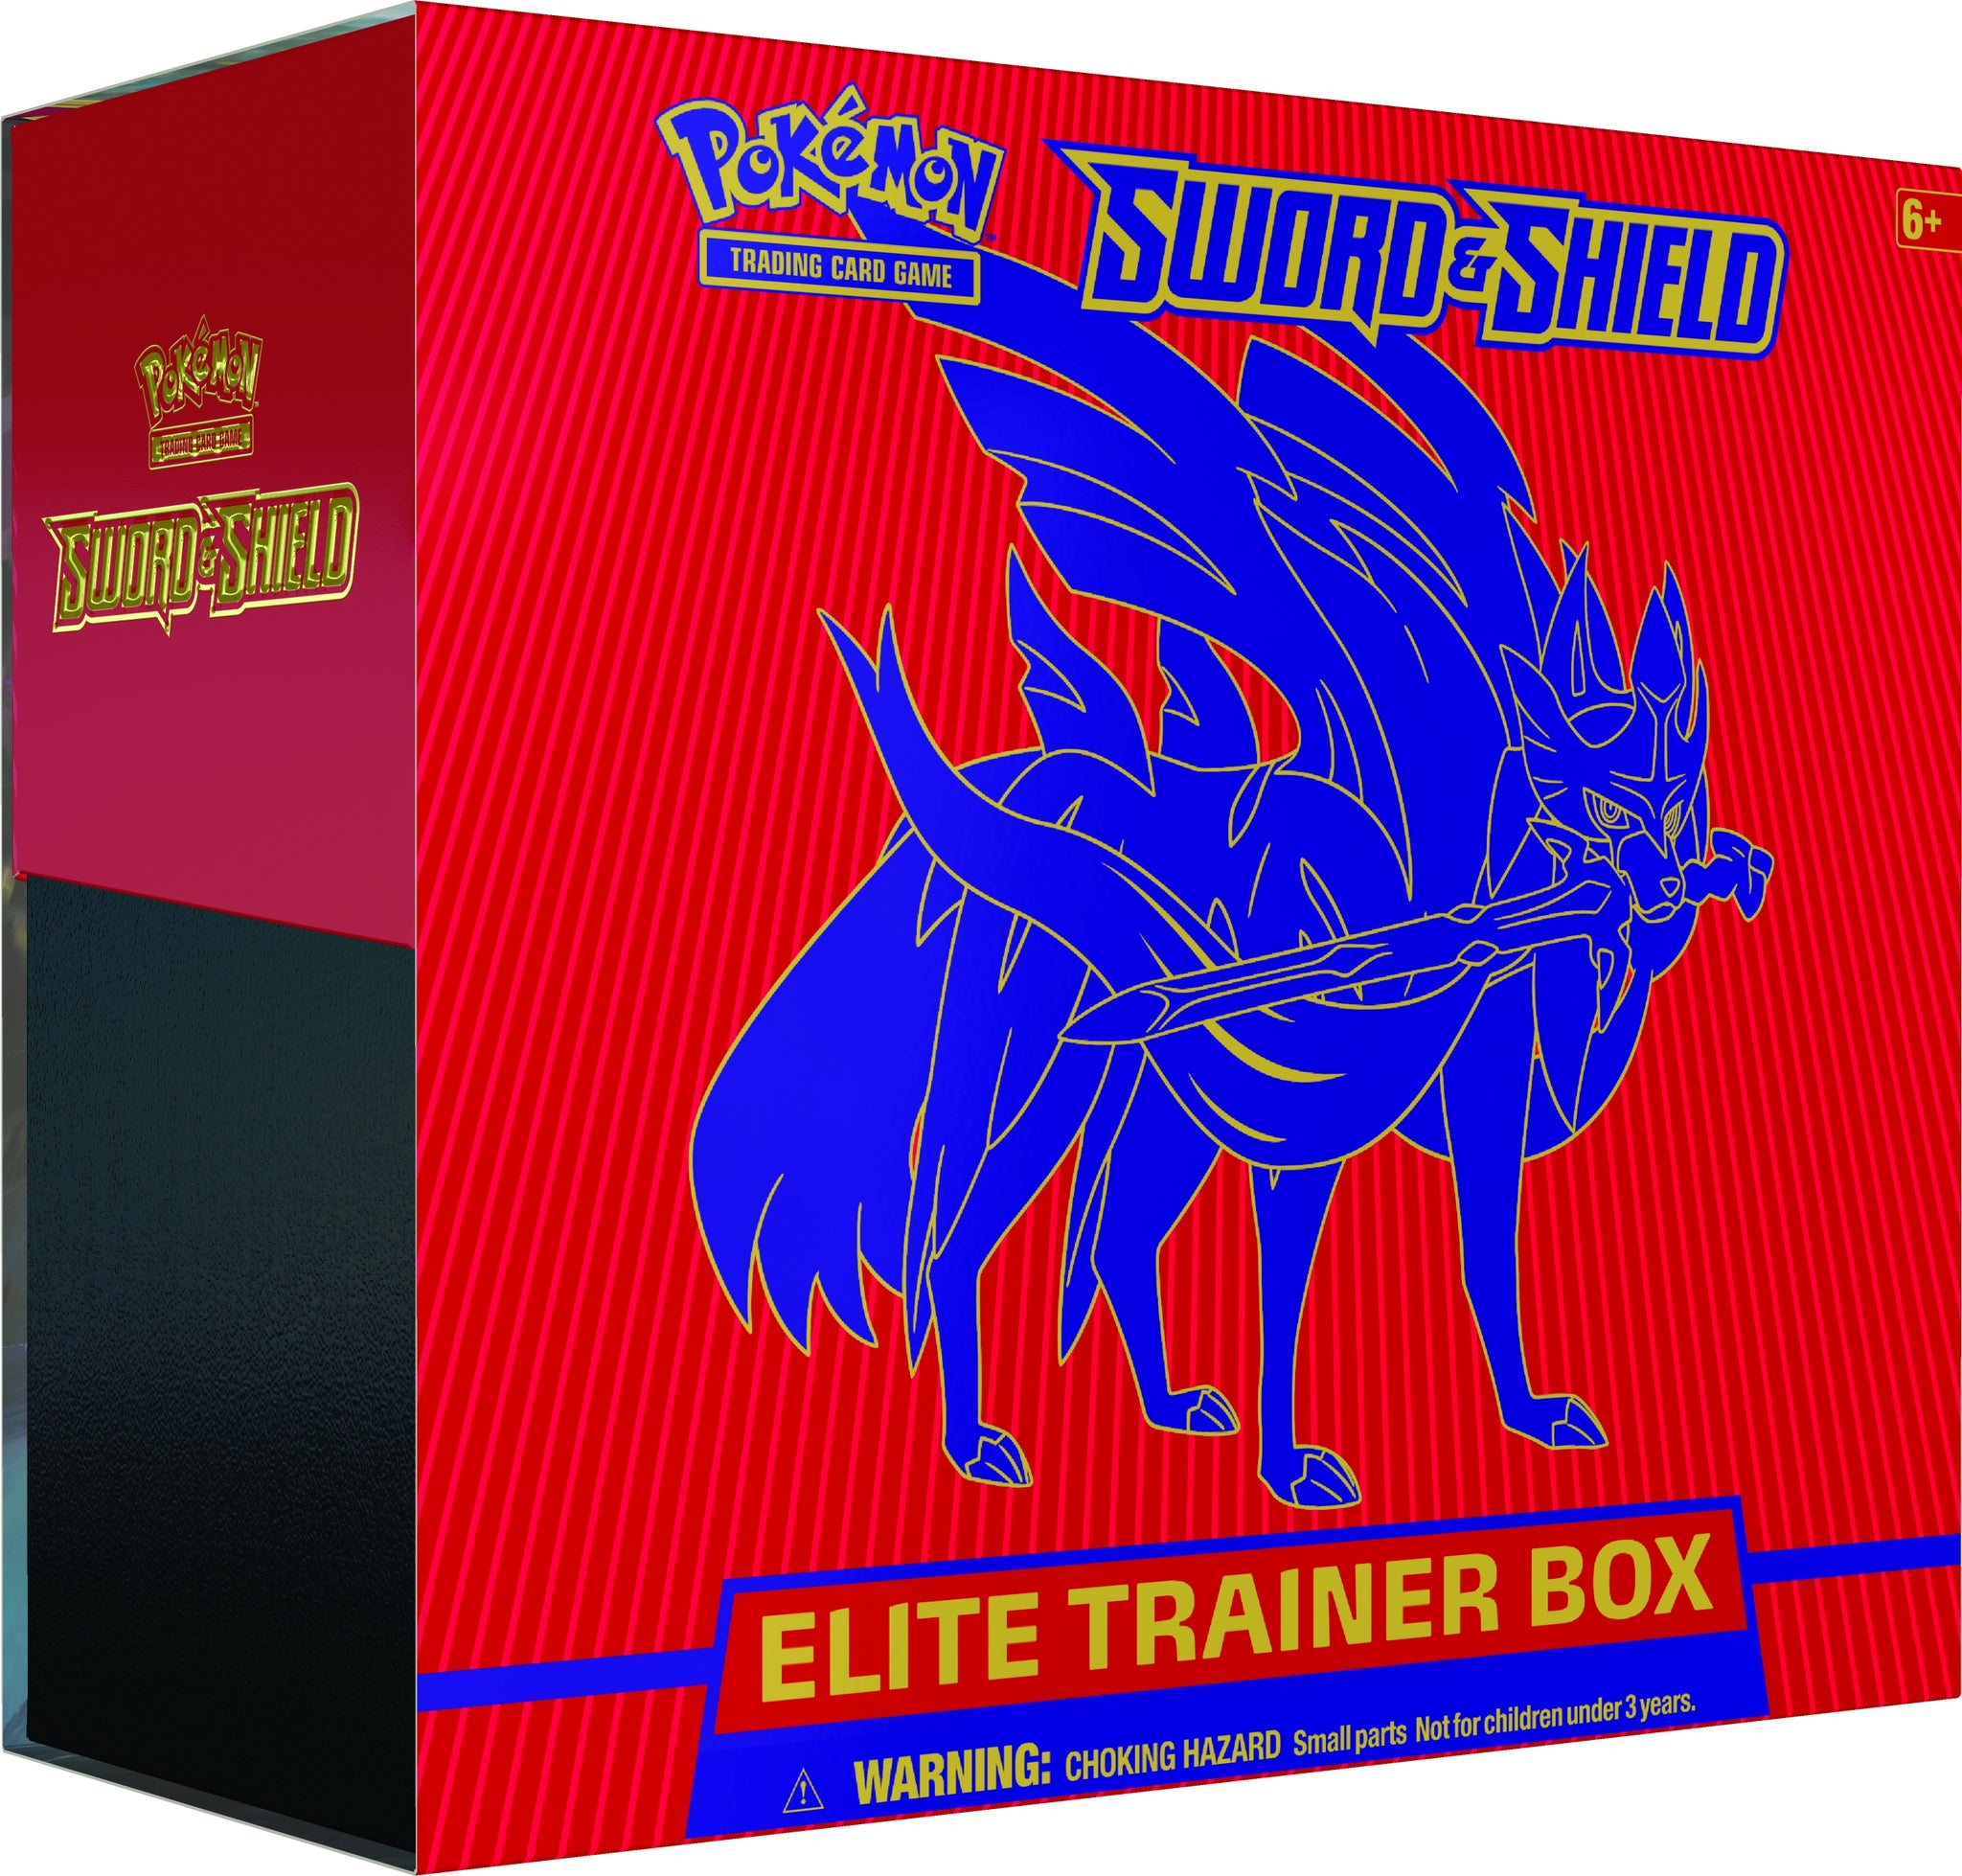 Pokémon TCG Sword & Shield Elite Trainer Box